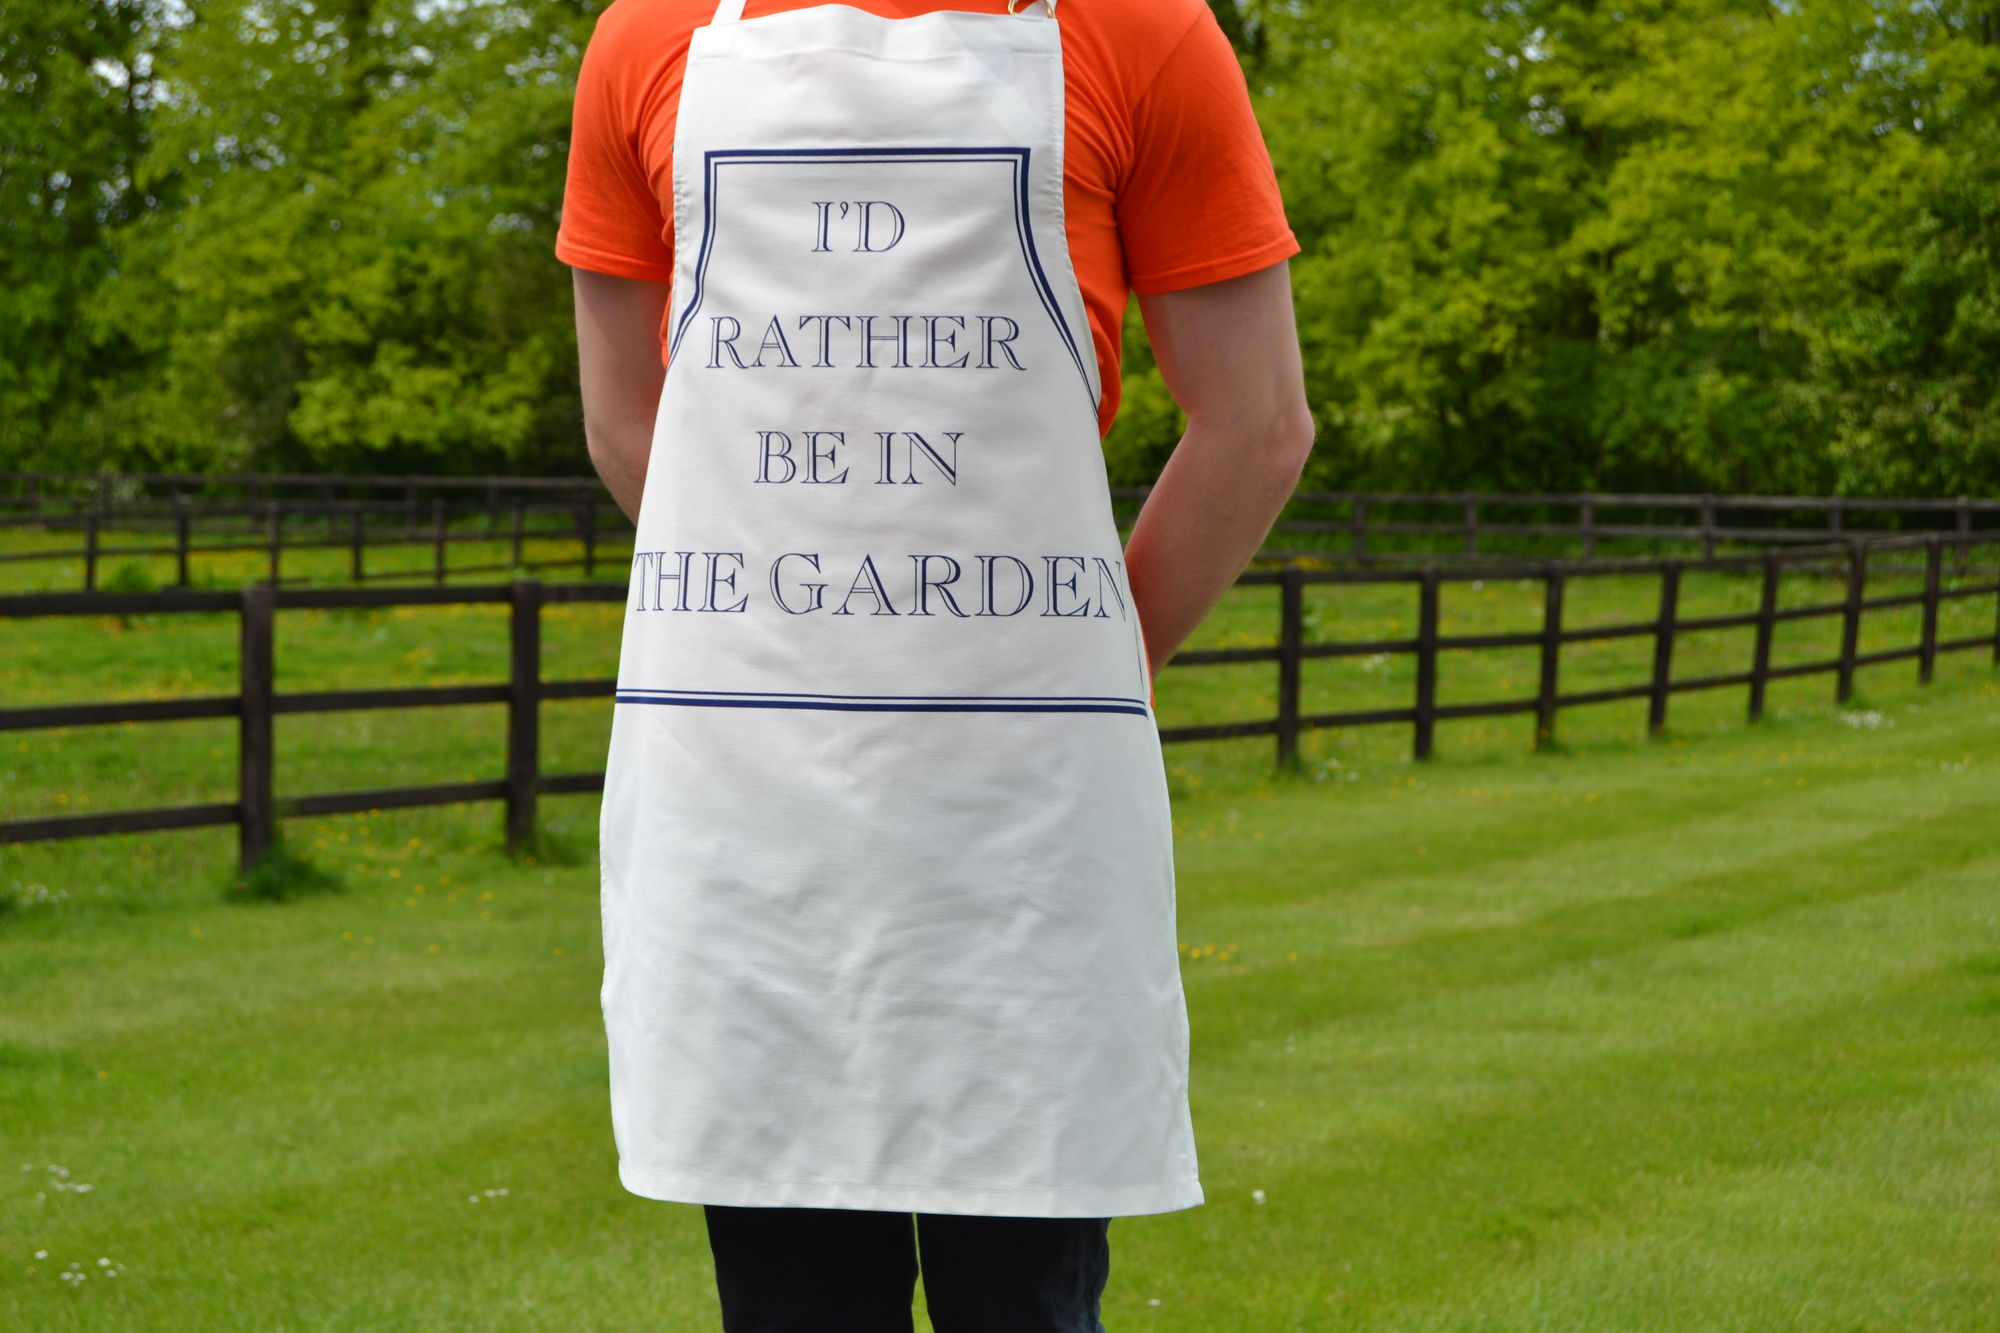 I'd Rather Be in the Garden apron